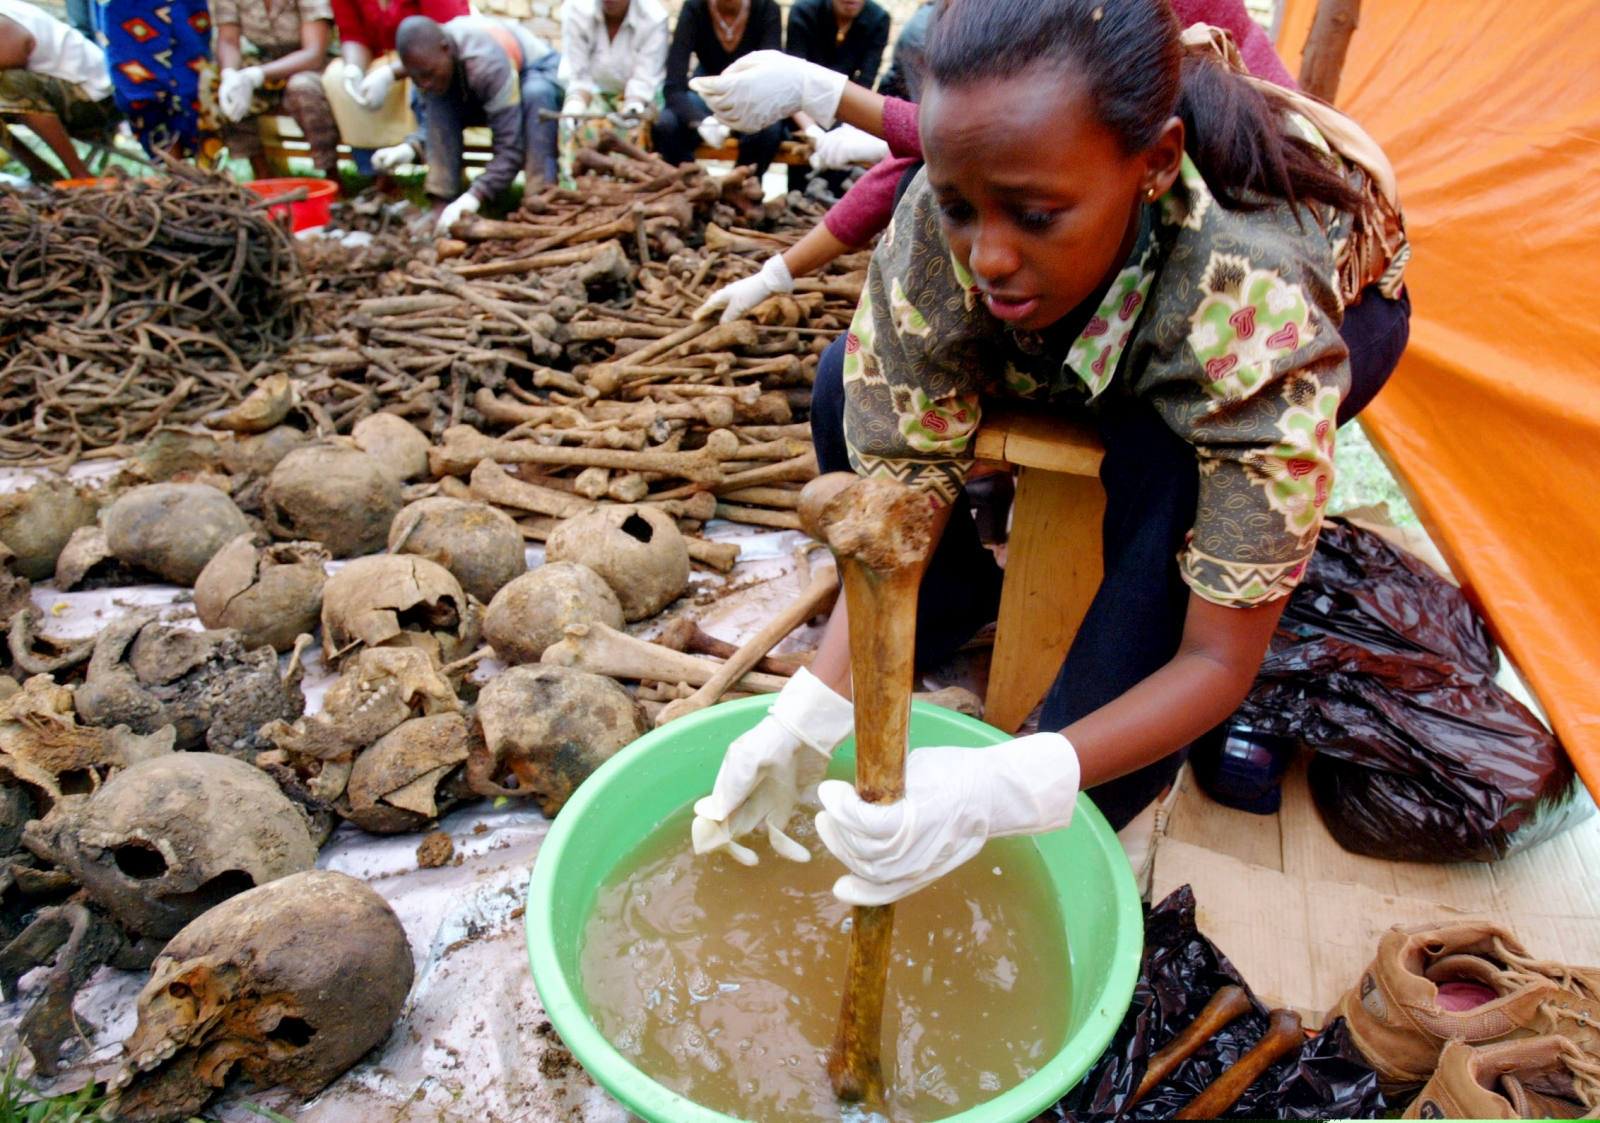 the rwandan genocide The order of genocide: race, power, and war in rwanda [scott straus] on amazoncom free shipping on qualifying offers the rwandan genocide has become a touchstone for debates about the causes of mass violence and the responsibilities of the international community yet a number of key questions about this tragedy remain unanswered: how did.